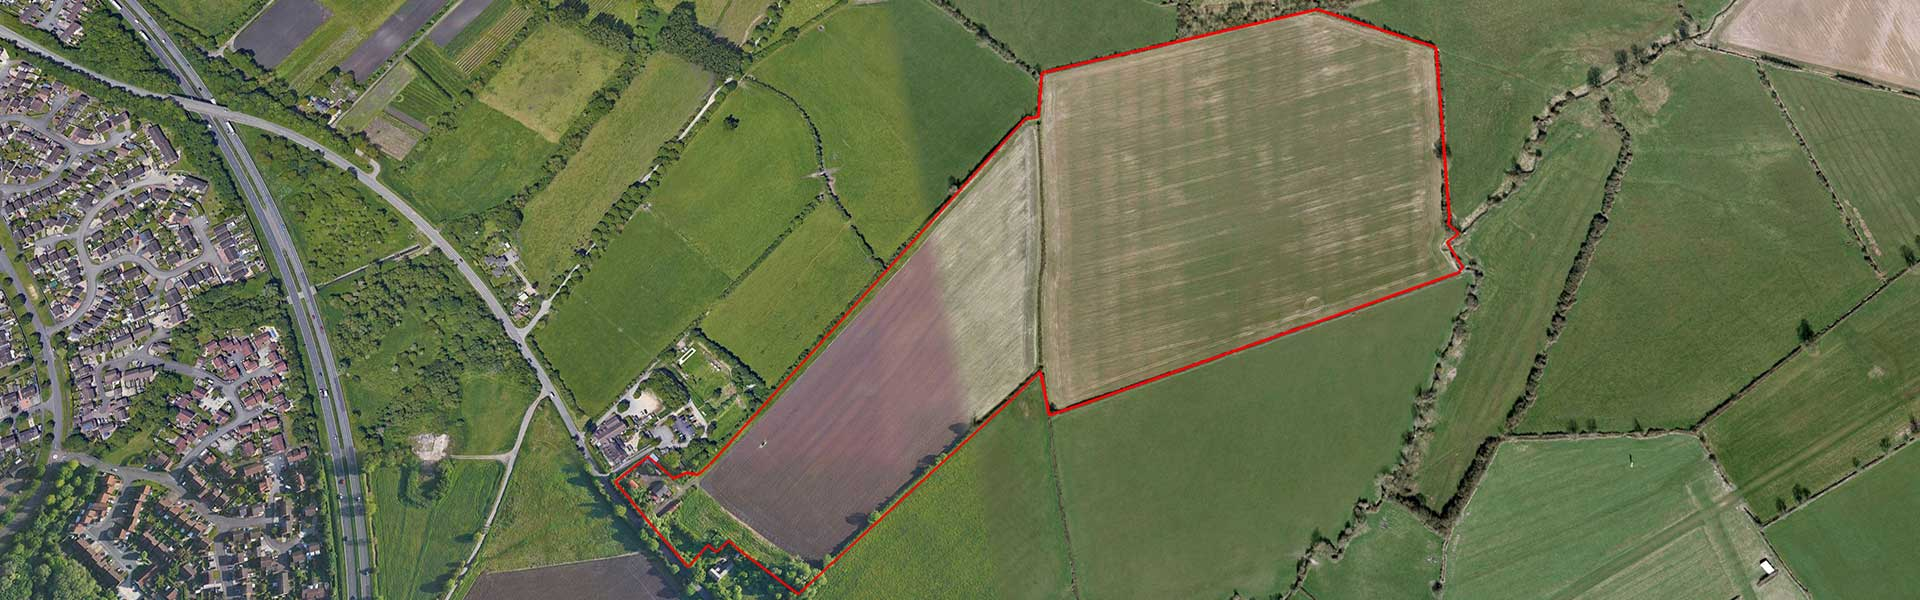 Land off Wanborough Road, Swindon Boundary